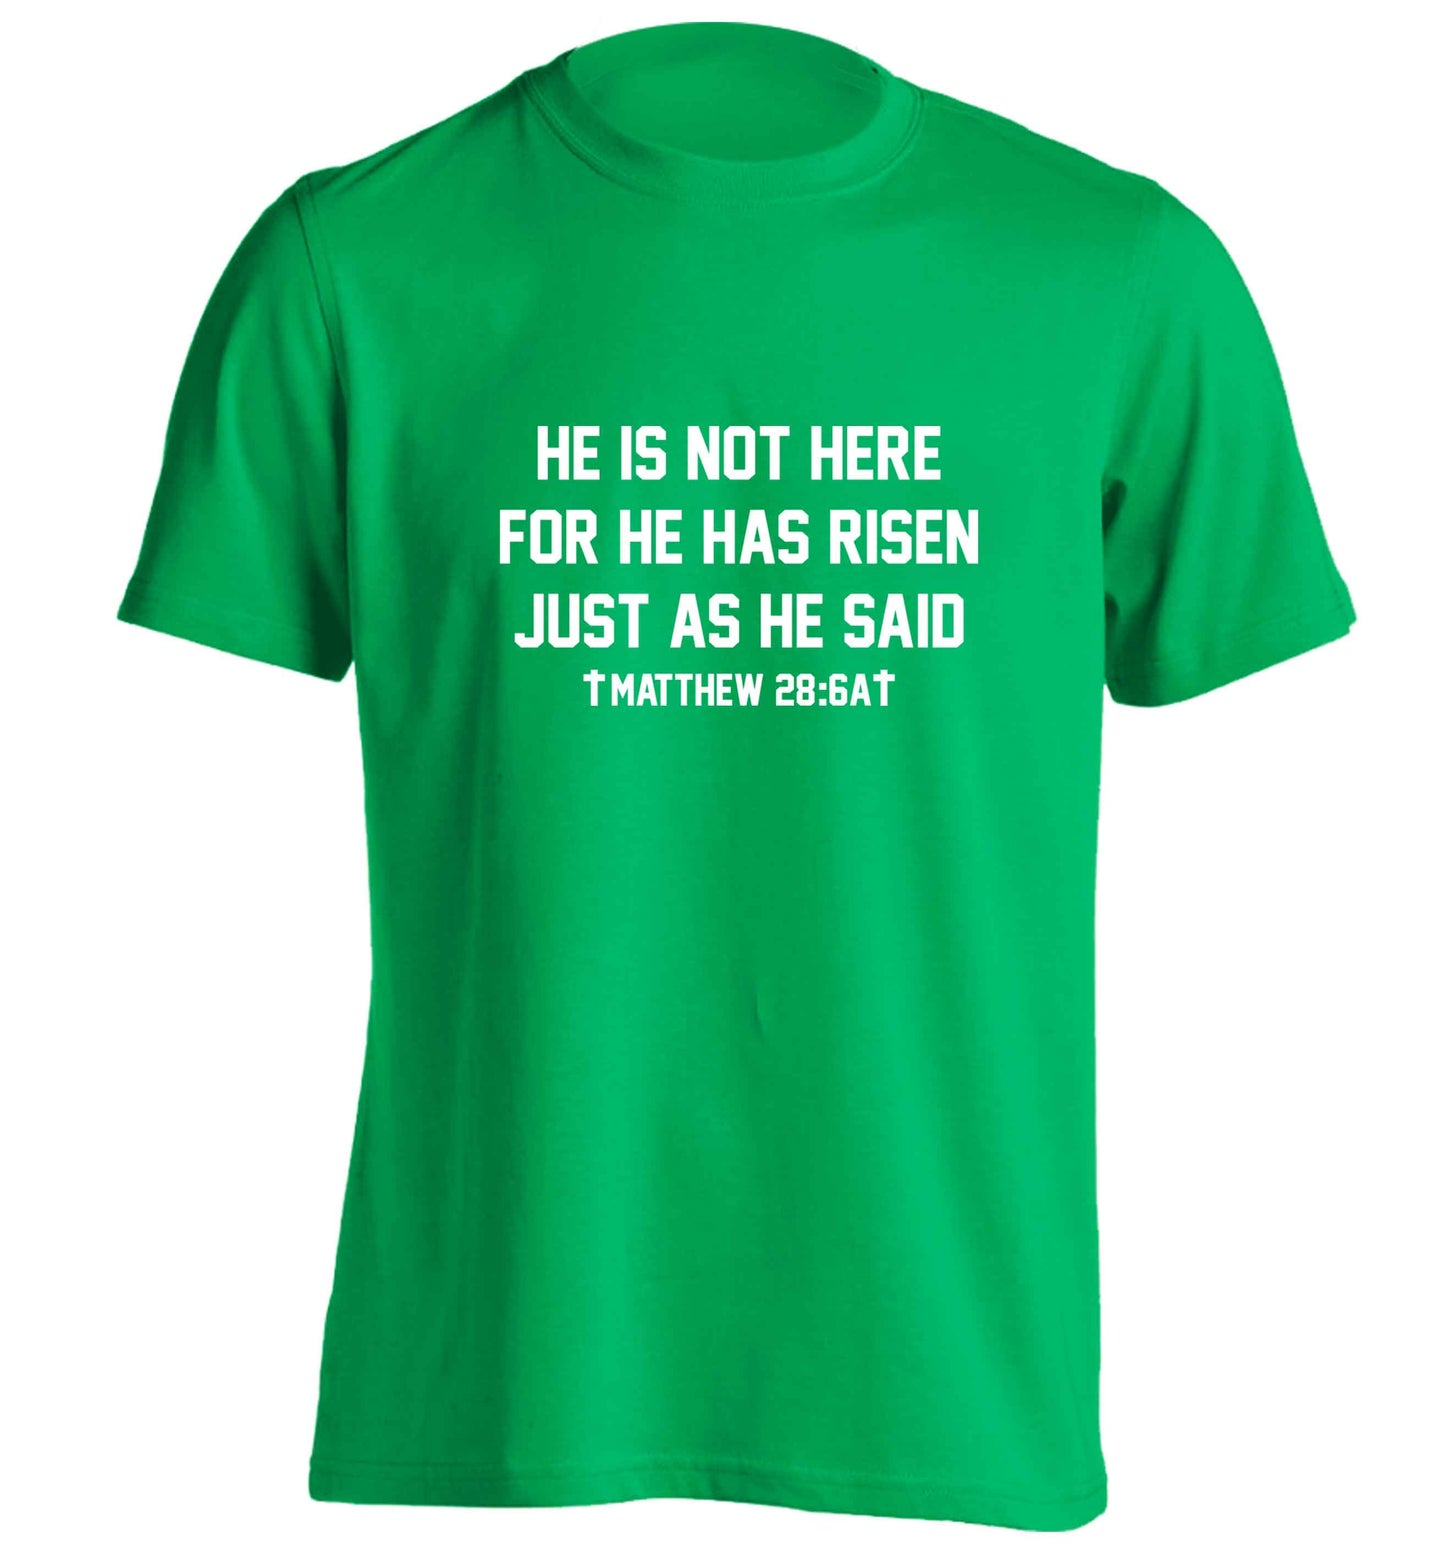 He is not here for he has risen just as he said matthew 28:6A adults unisex green Tshirt 2XL